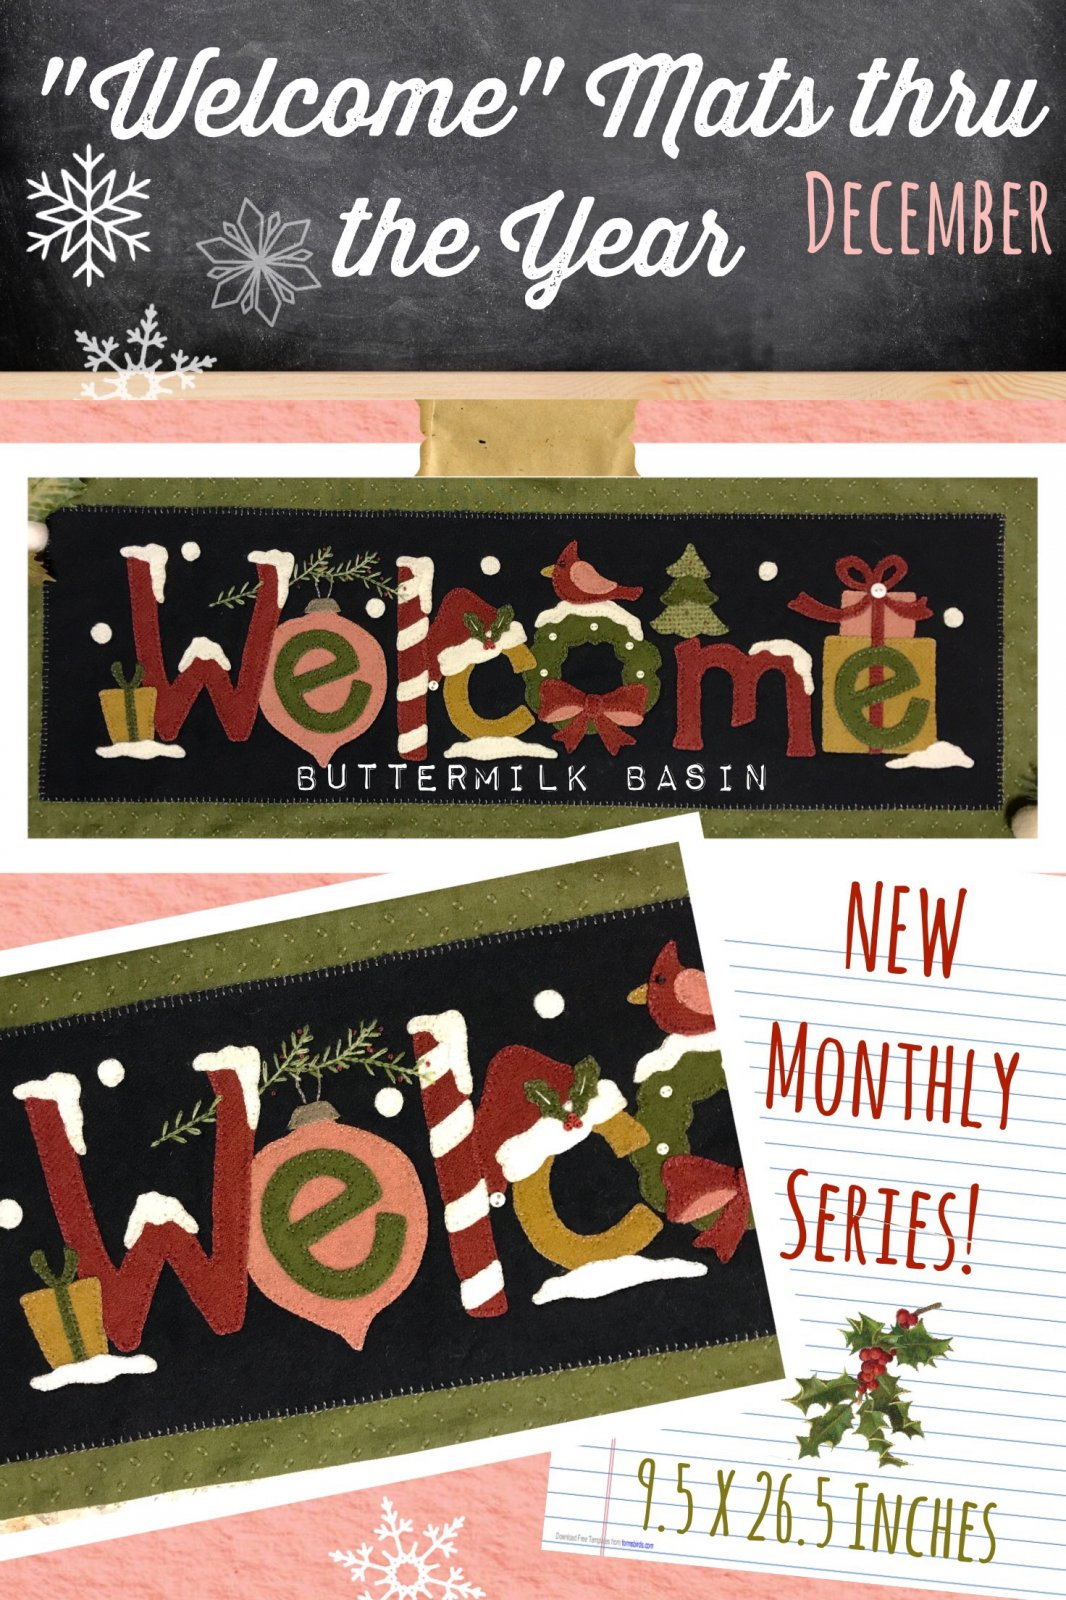 Welcome Mat thru the Year * December * KIT & Pattern